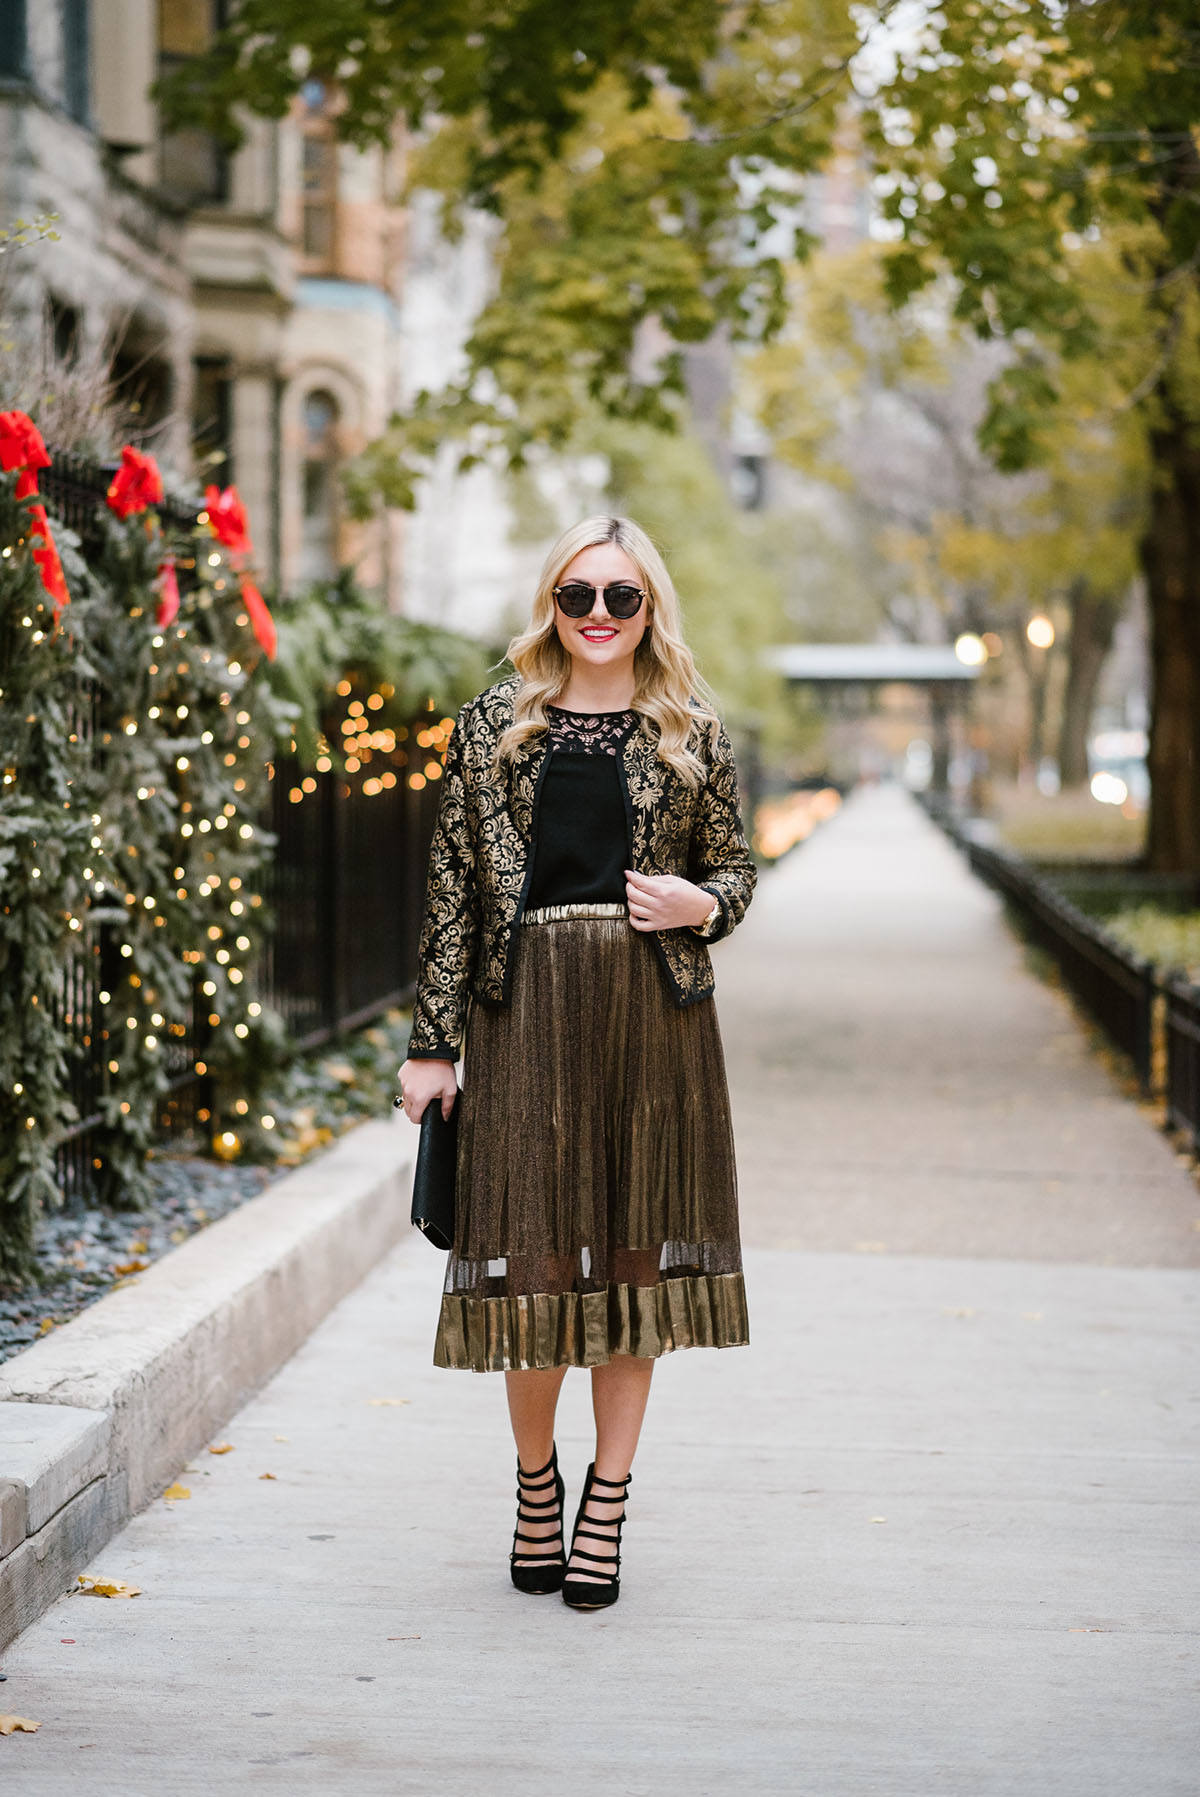 568dc4732e932 Bows & Sequins styling a shimmery gold midi skirt and a black and gold  jacket for